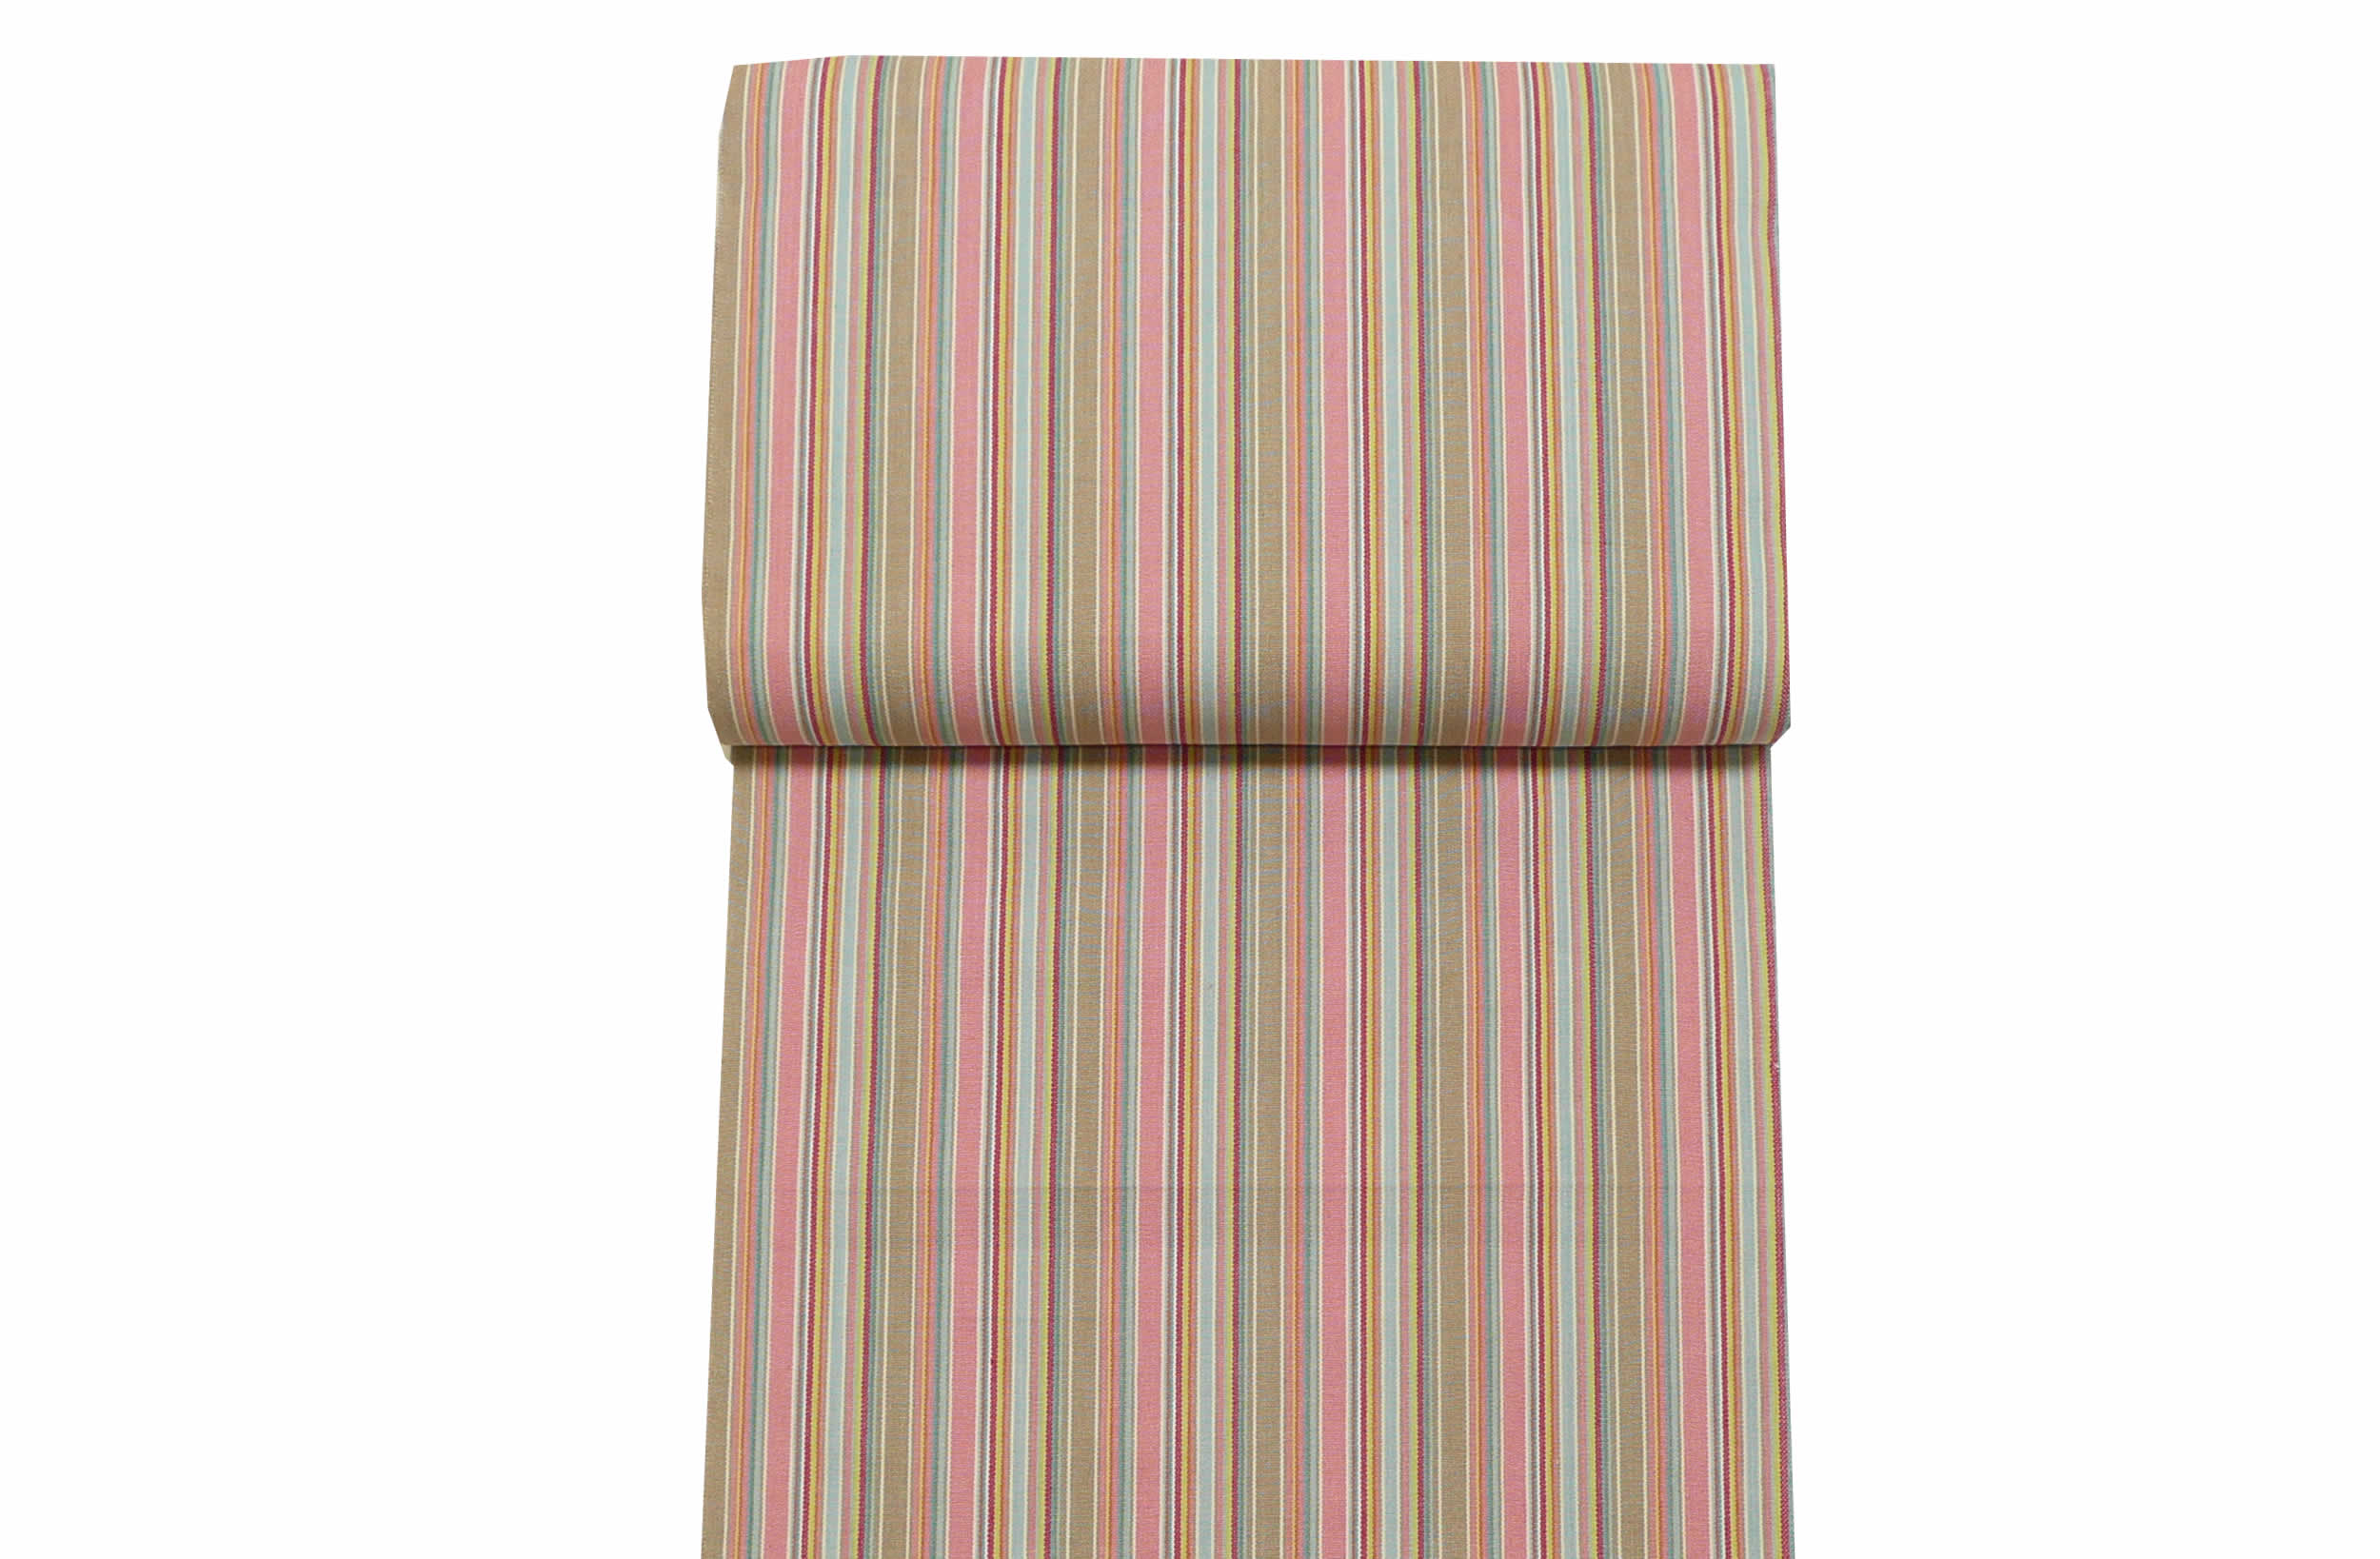 Pink and Taupe Deckchair Canvas Fabric